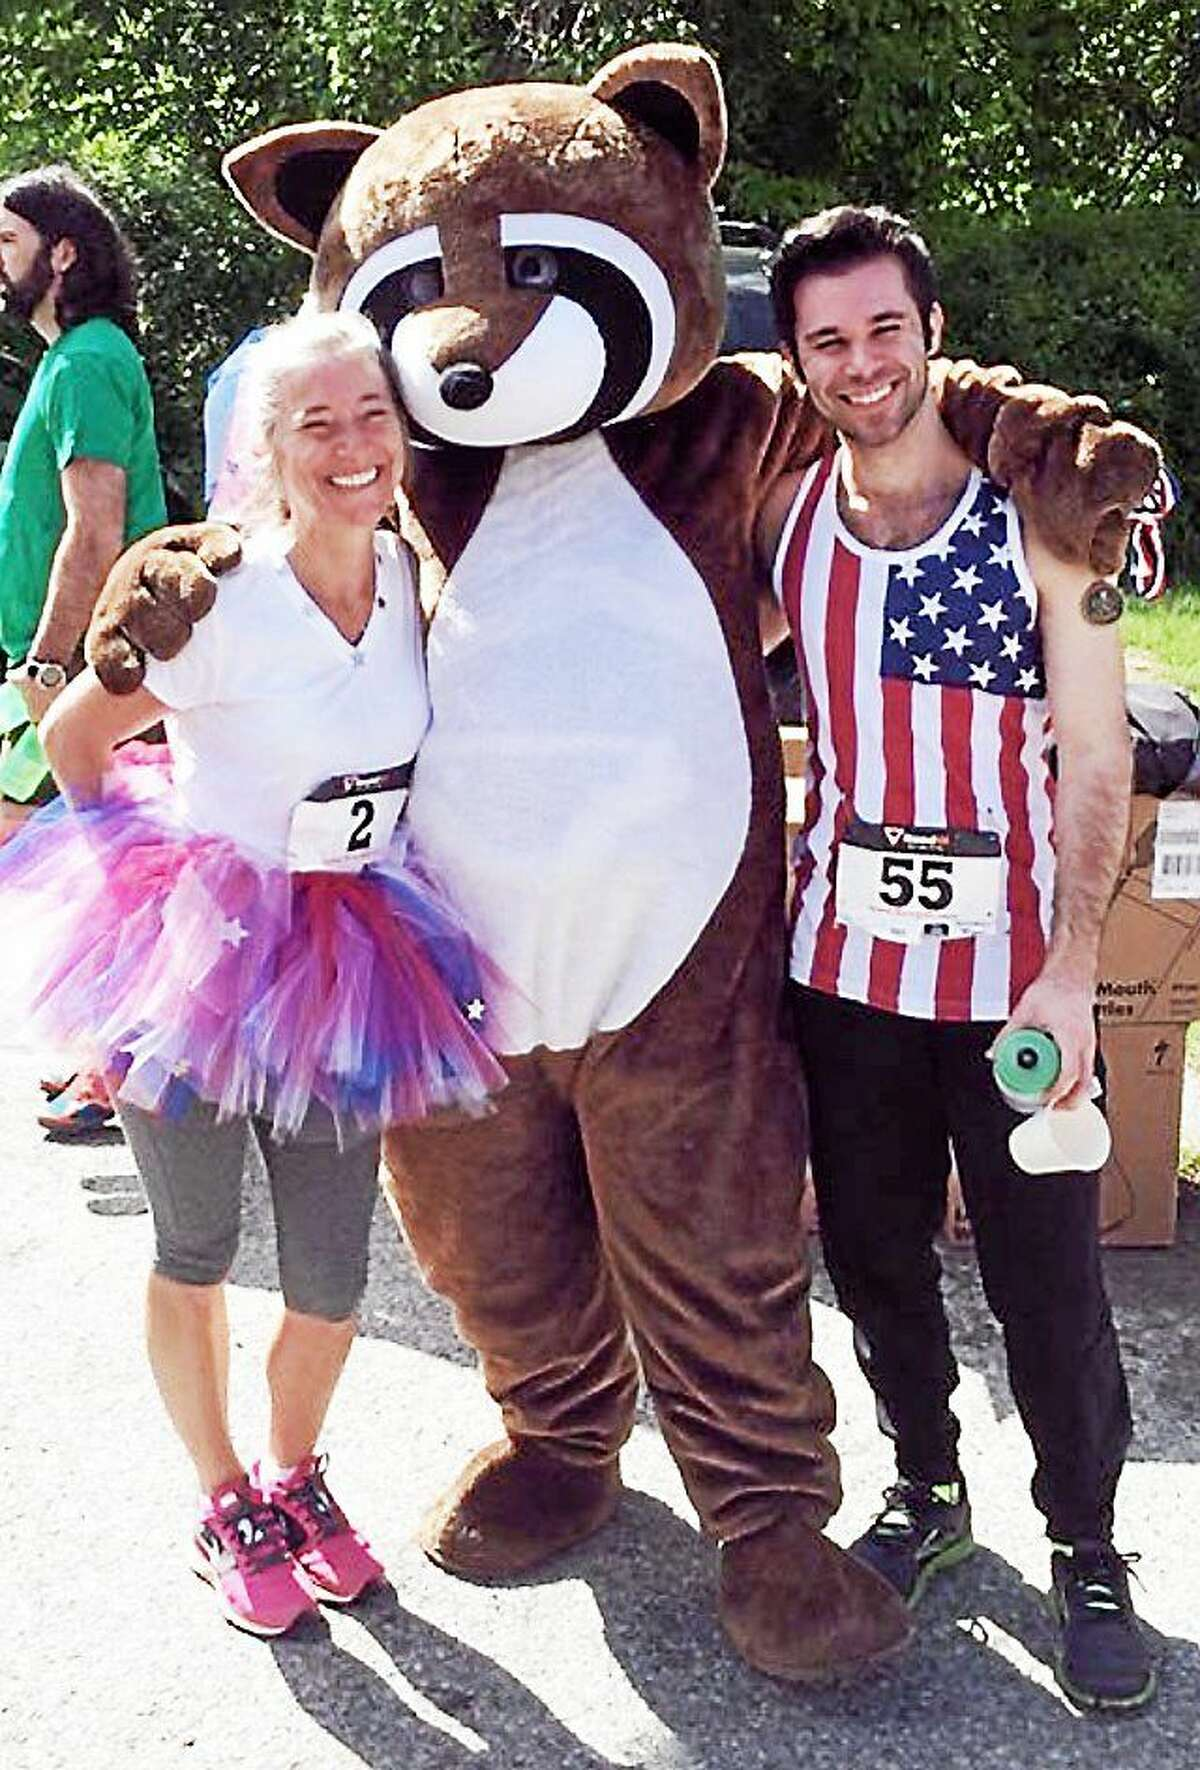 Middletown runner Julie Cesare, left, wears her trademark tutu to one of the many races she's taken part in since suffering a traumatic brain injury. She is pictured with her son, Travis Rock, also a survivor of a traumatic head injury.